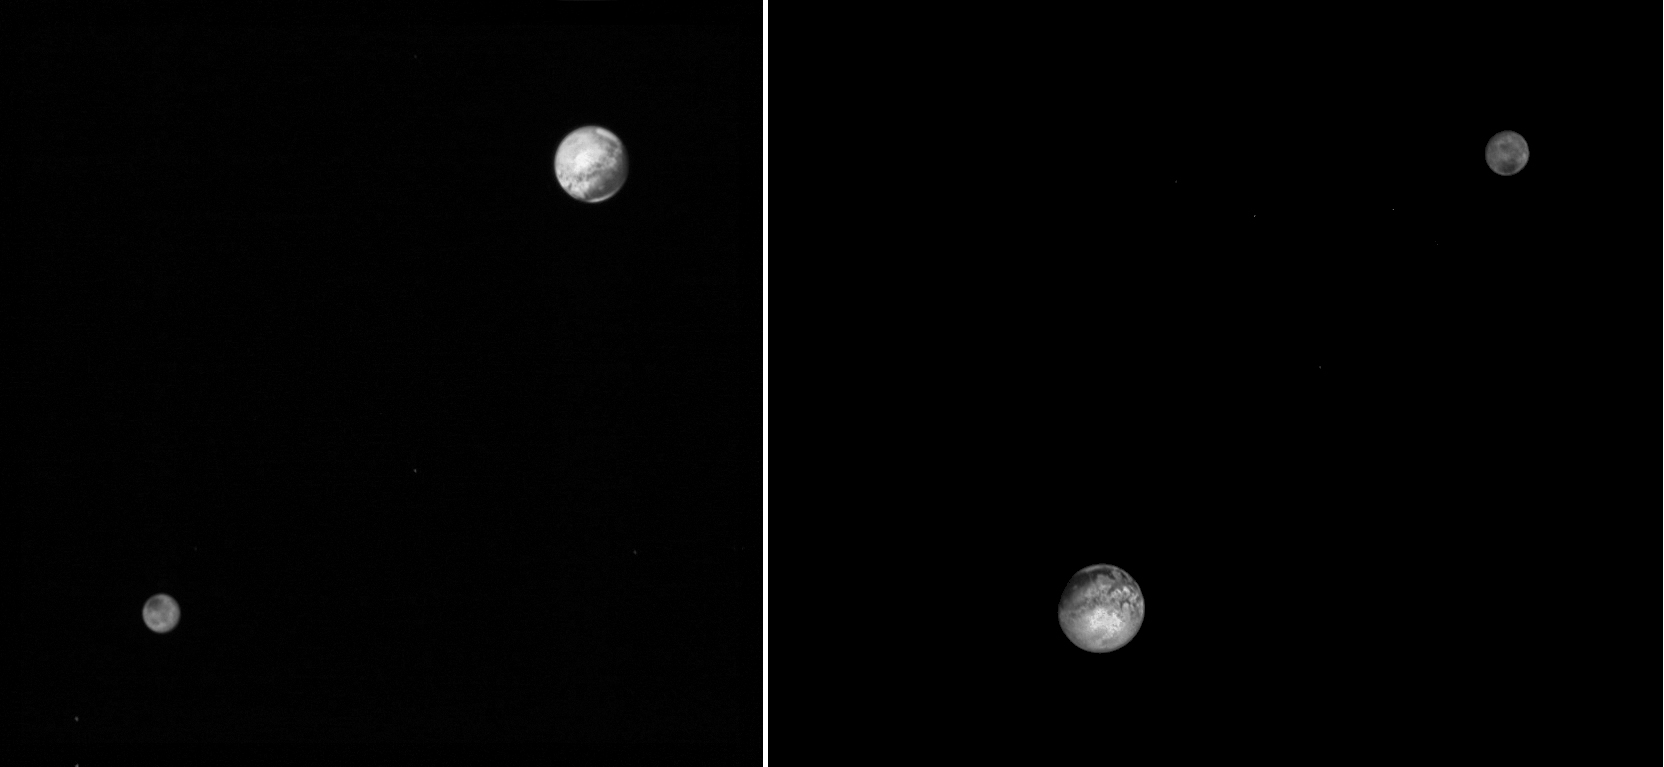 Pluto and Charon LORRI 2015-07-09